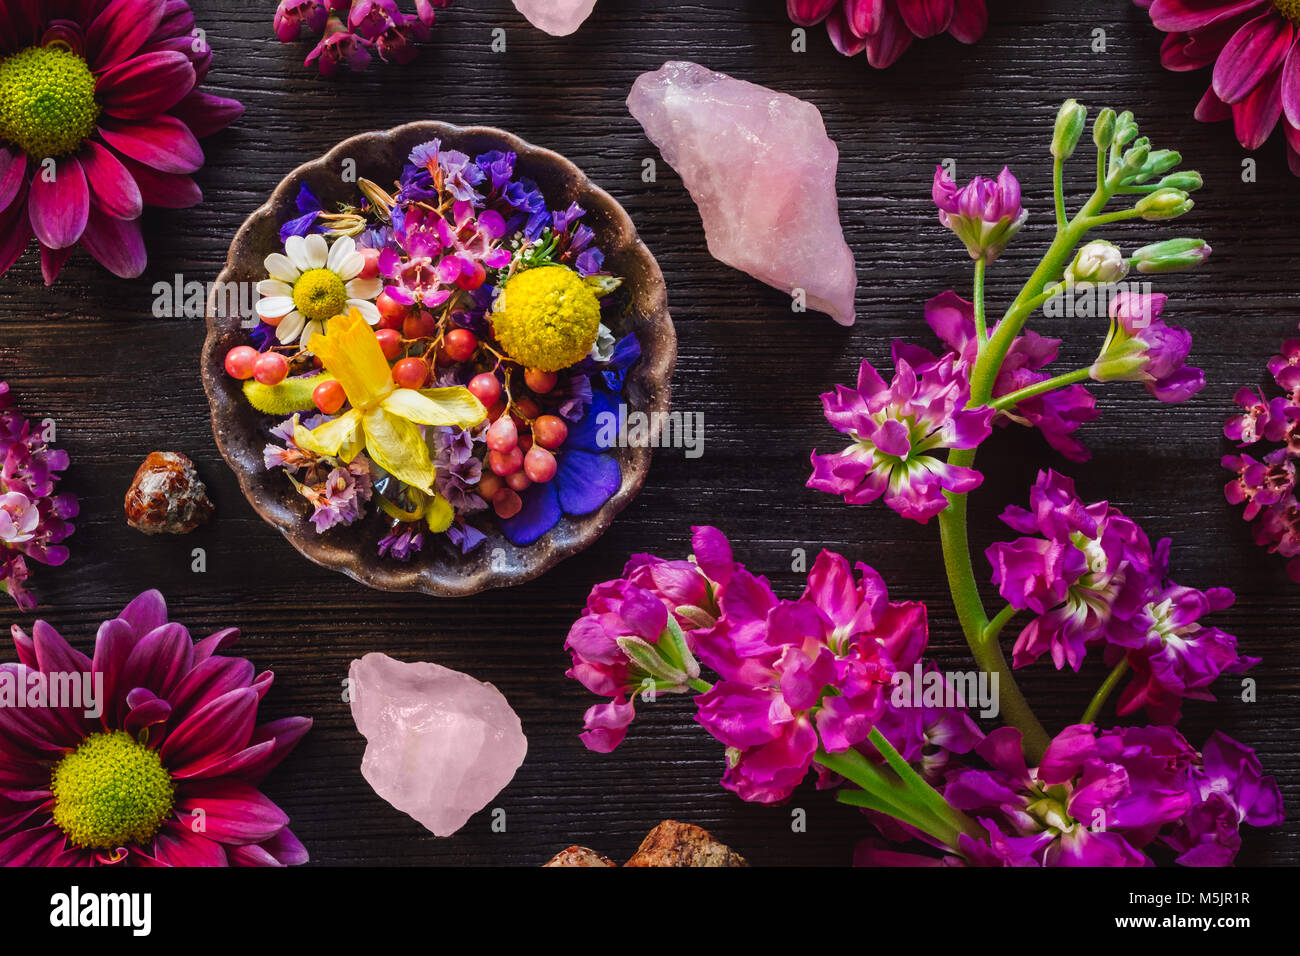 Spring Mix of Flowers, Rose Quartz and Garnet on Dark Table - Stock Image